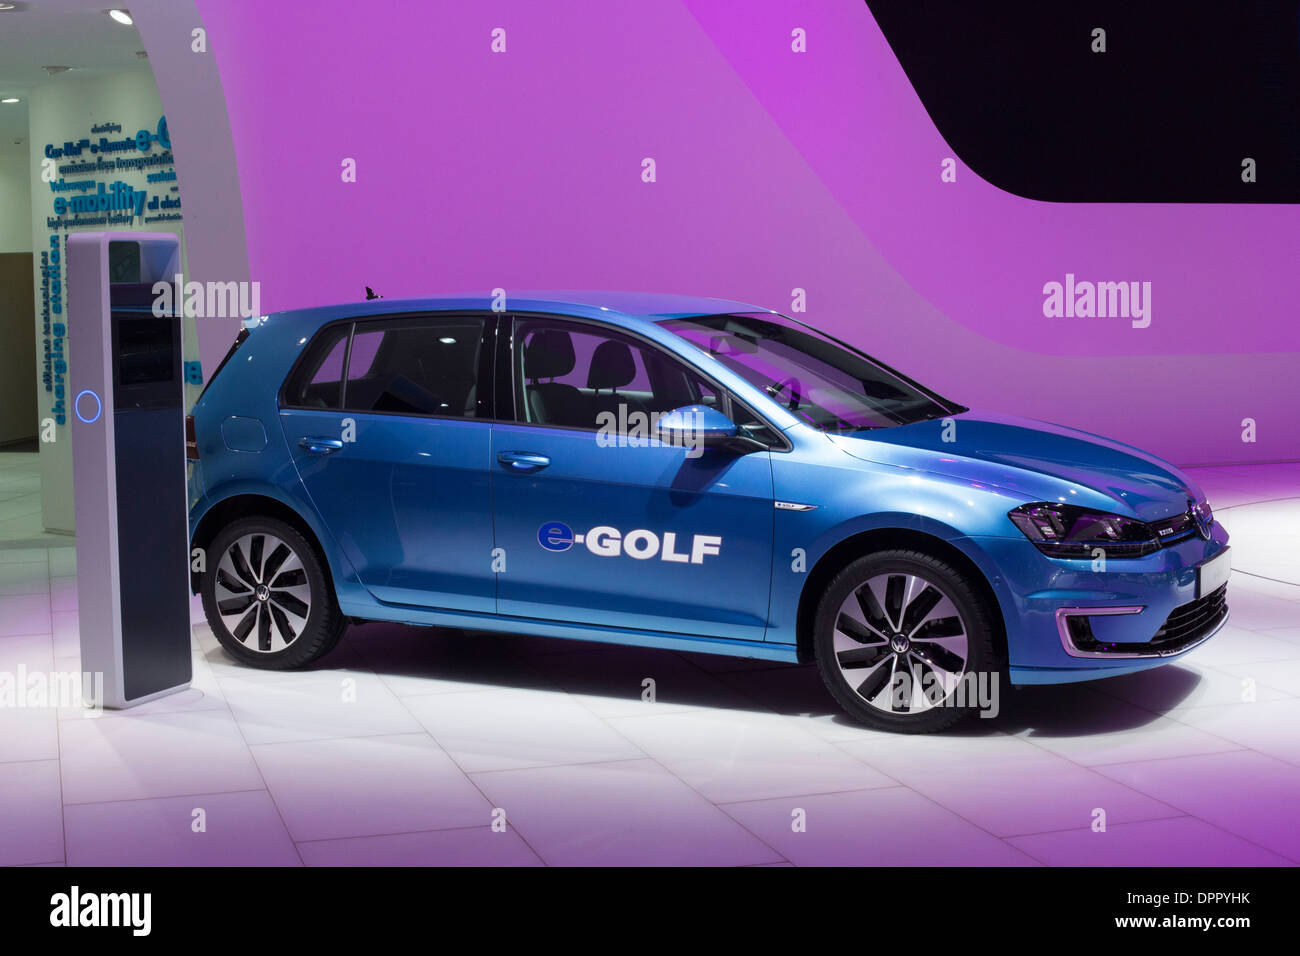 Detroit, Michigan - Volkswagen's e-Golf electric car on display at the North American International Auto Show. - Stock Image